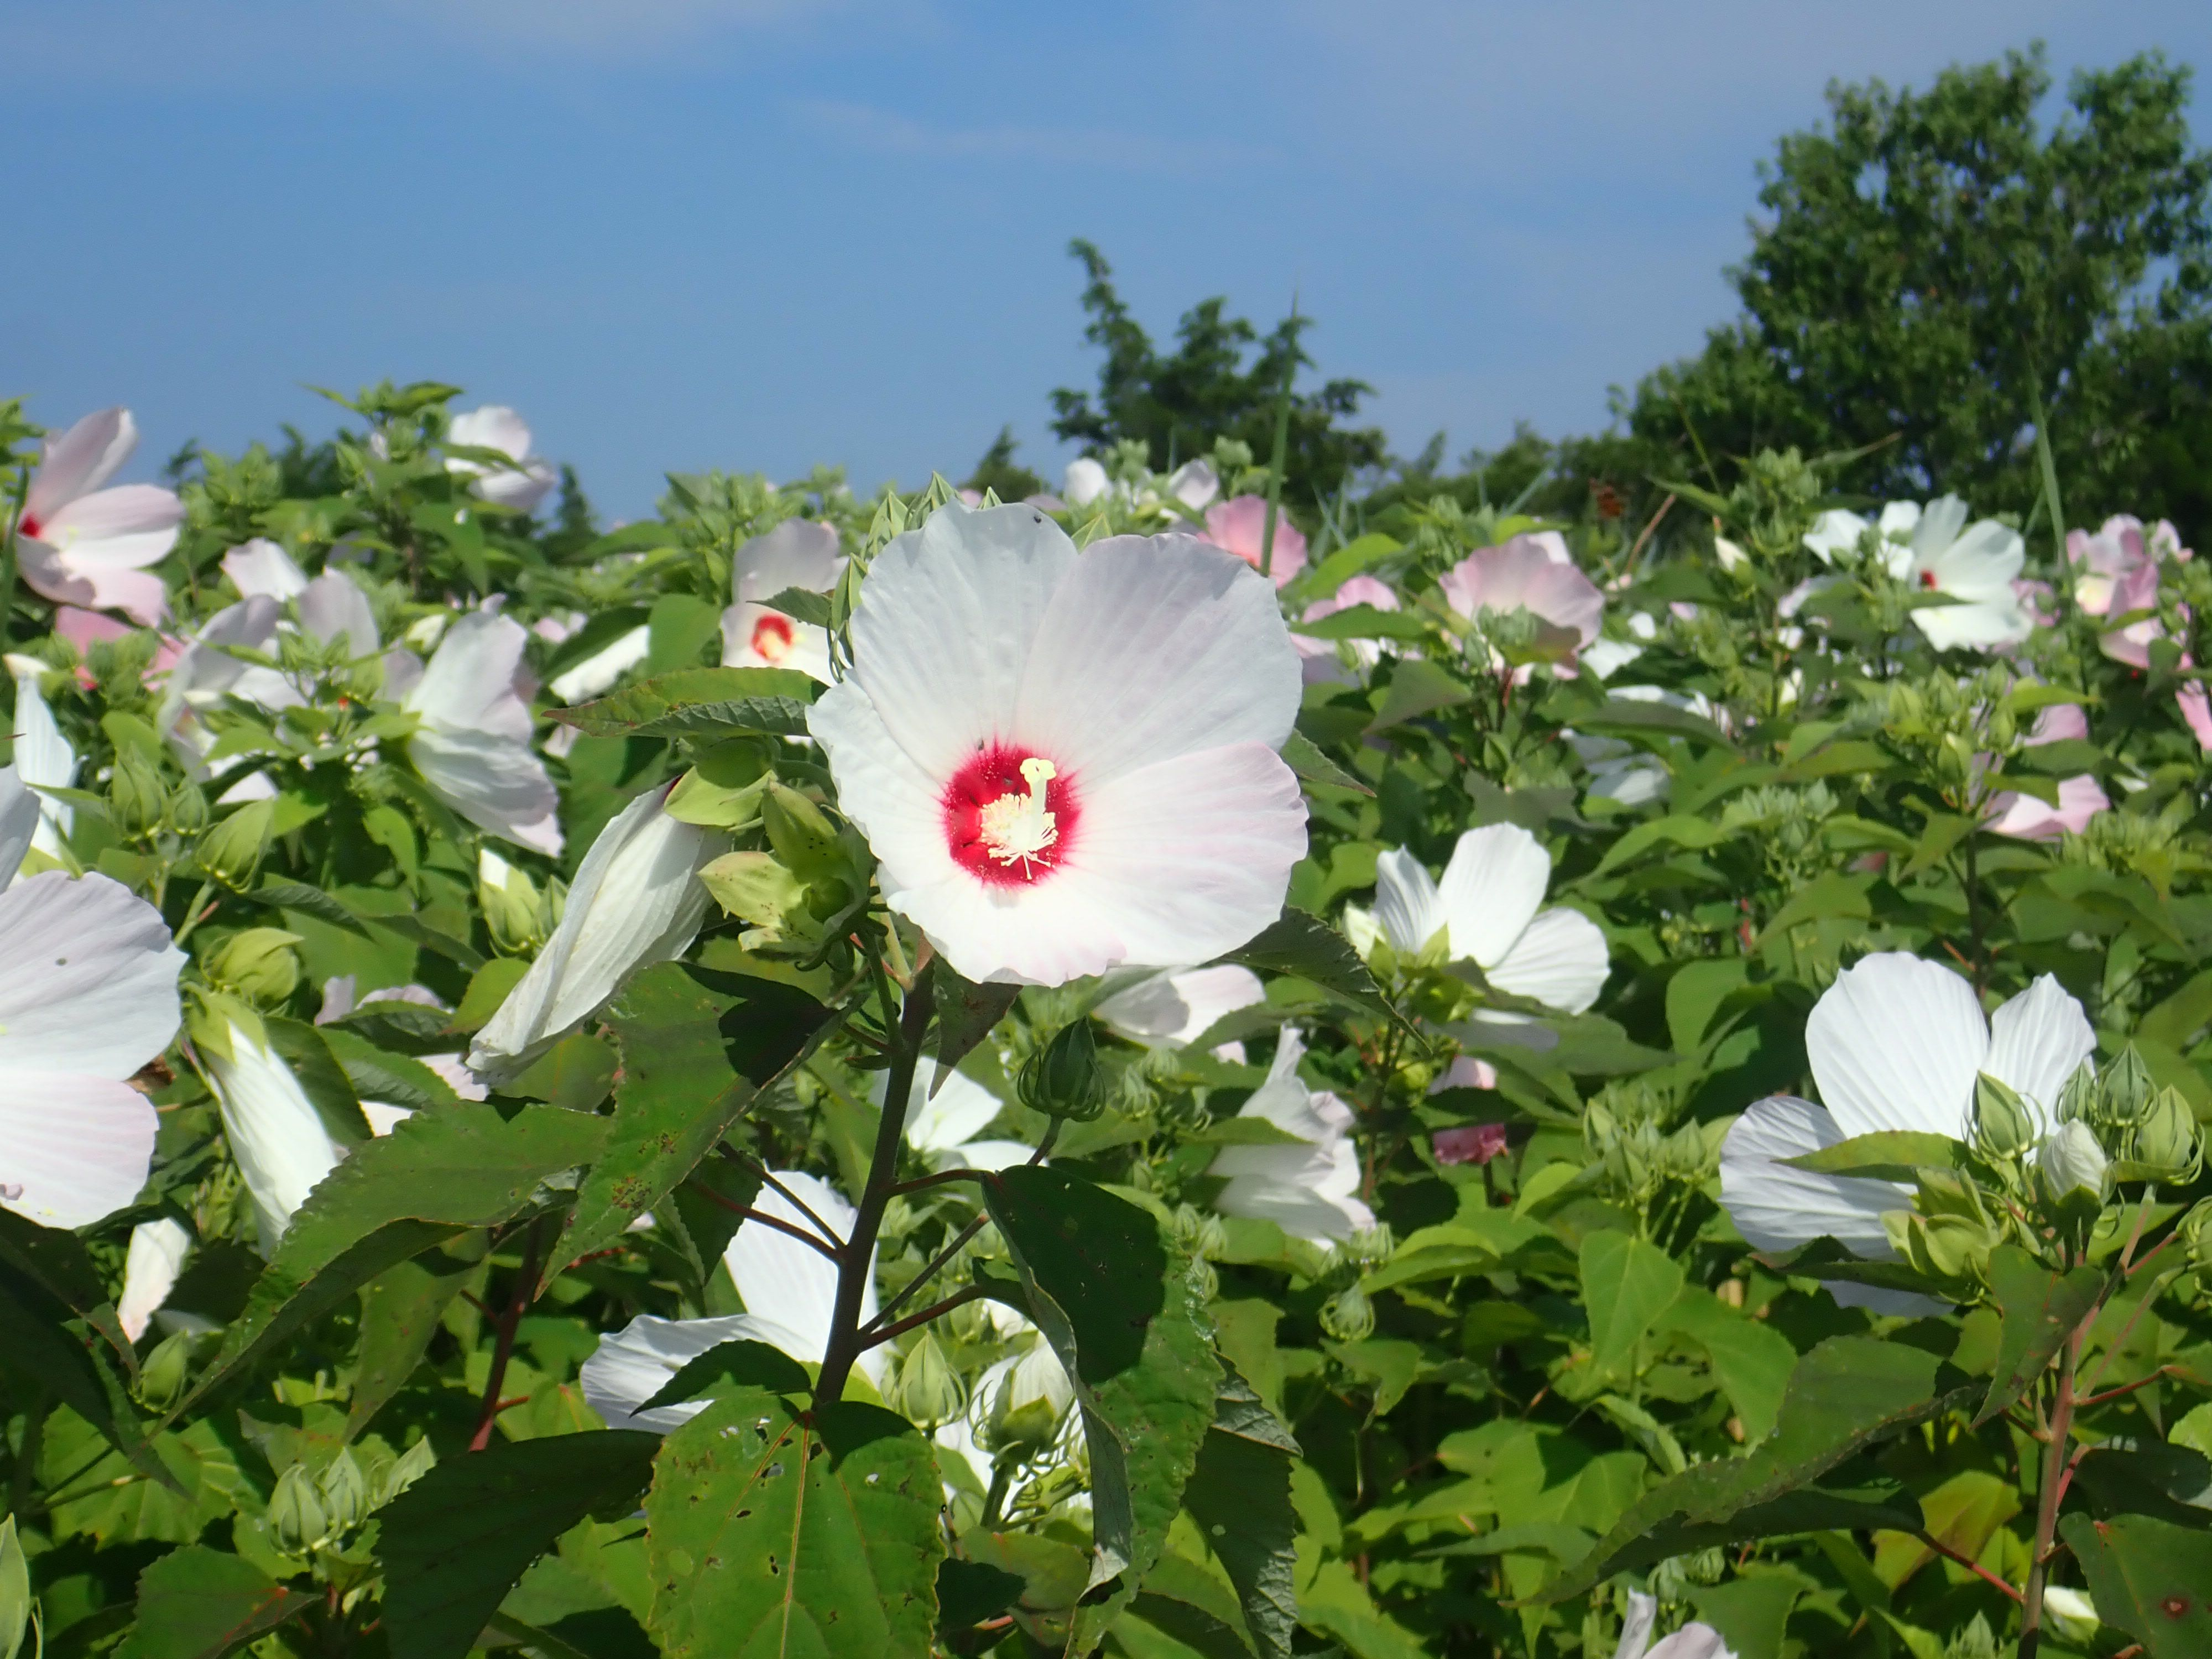 Swamp rose mallow is blooming in the wetlands.